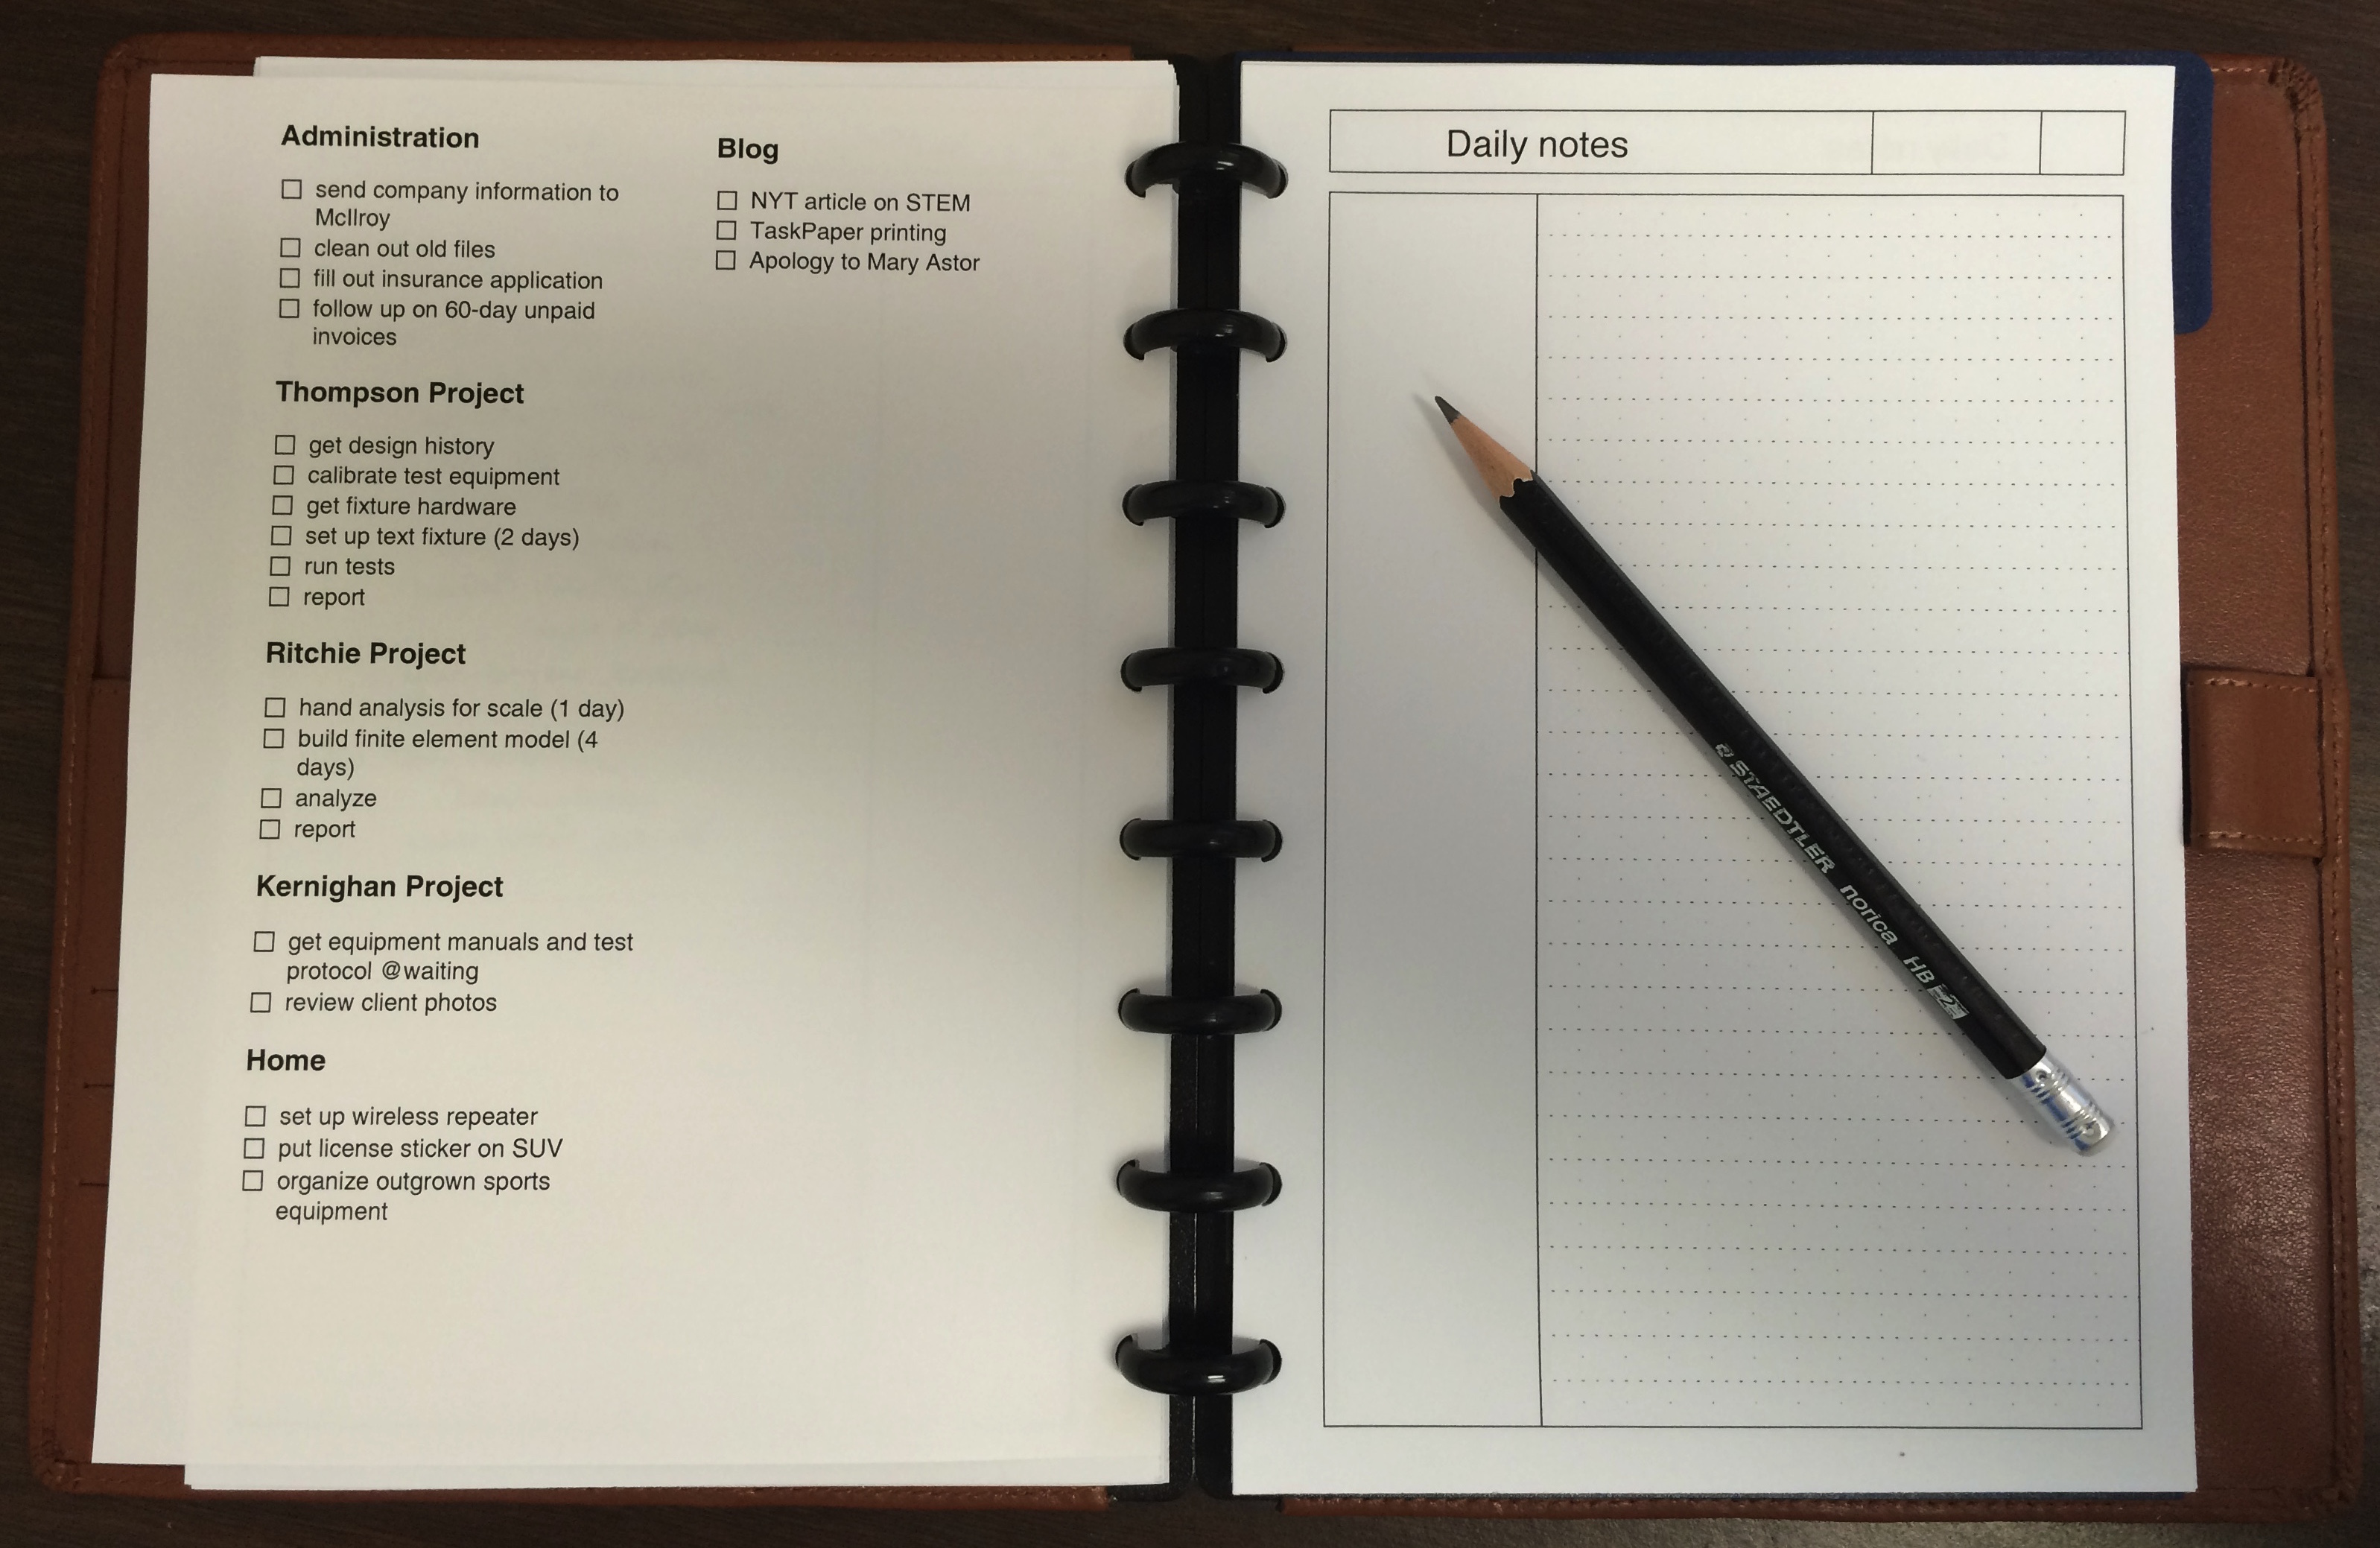 Daily planner with TaskPaper list